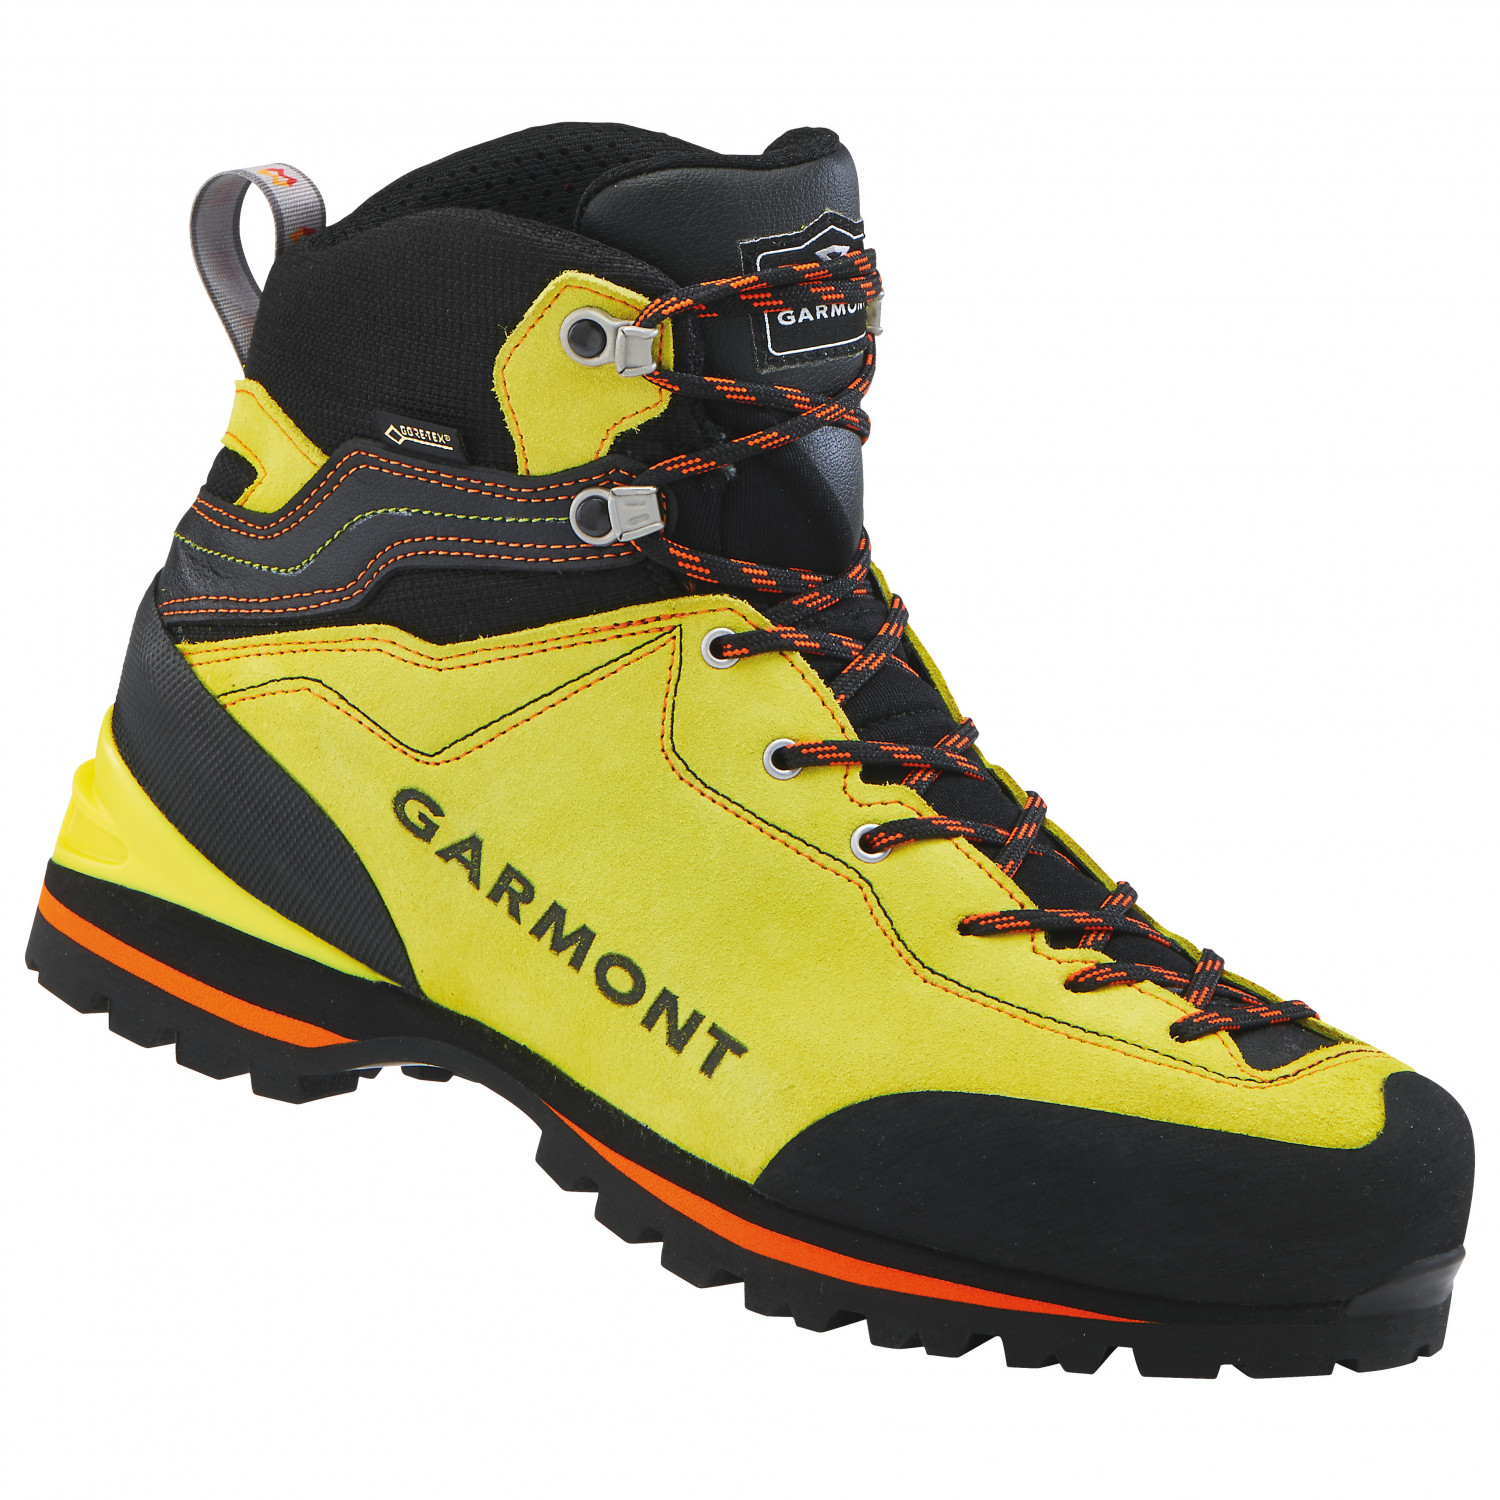 Garmont Ascent Gtx Mountaineering Boots Men S Free Uk